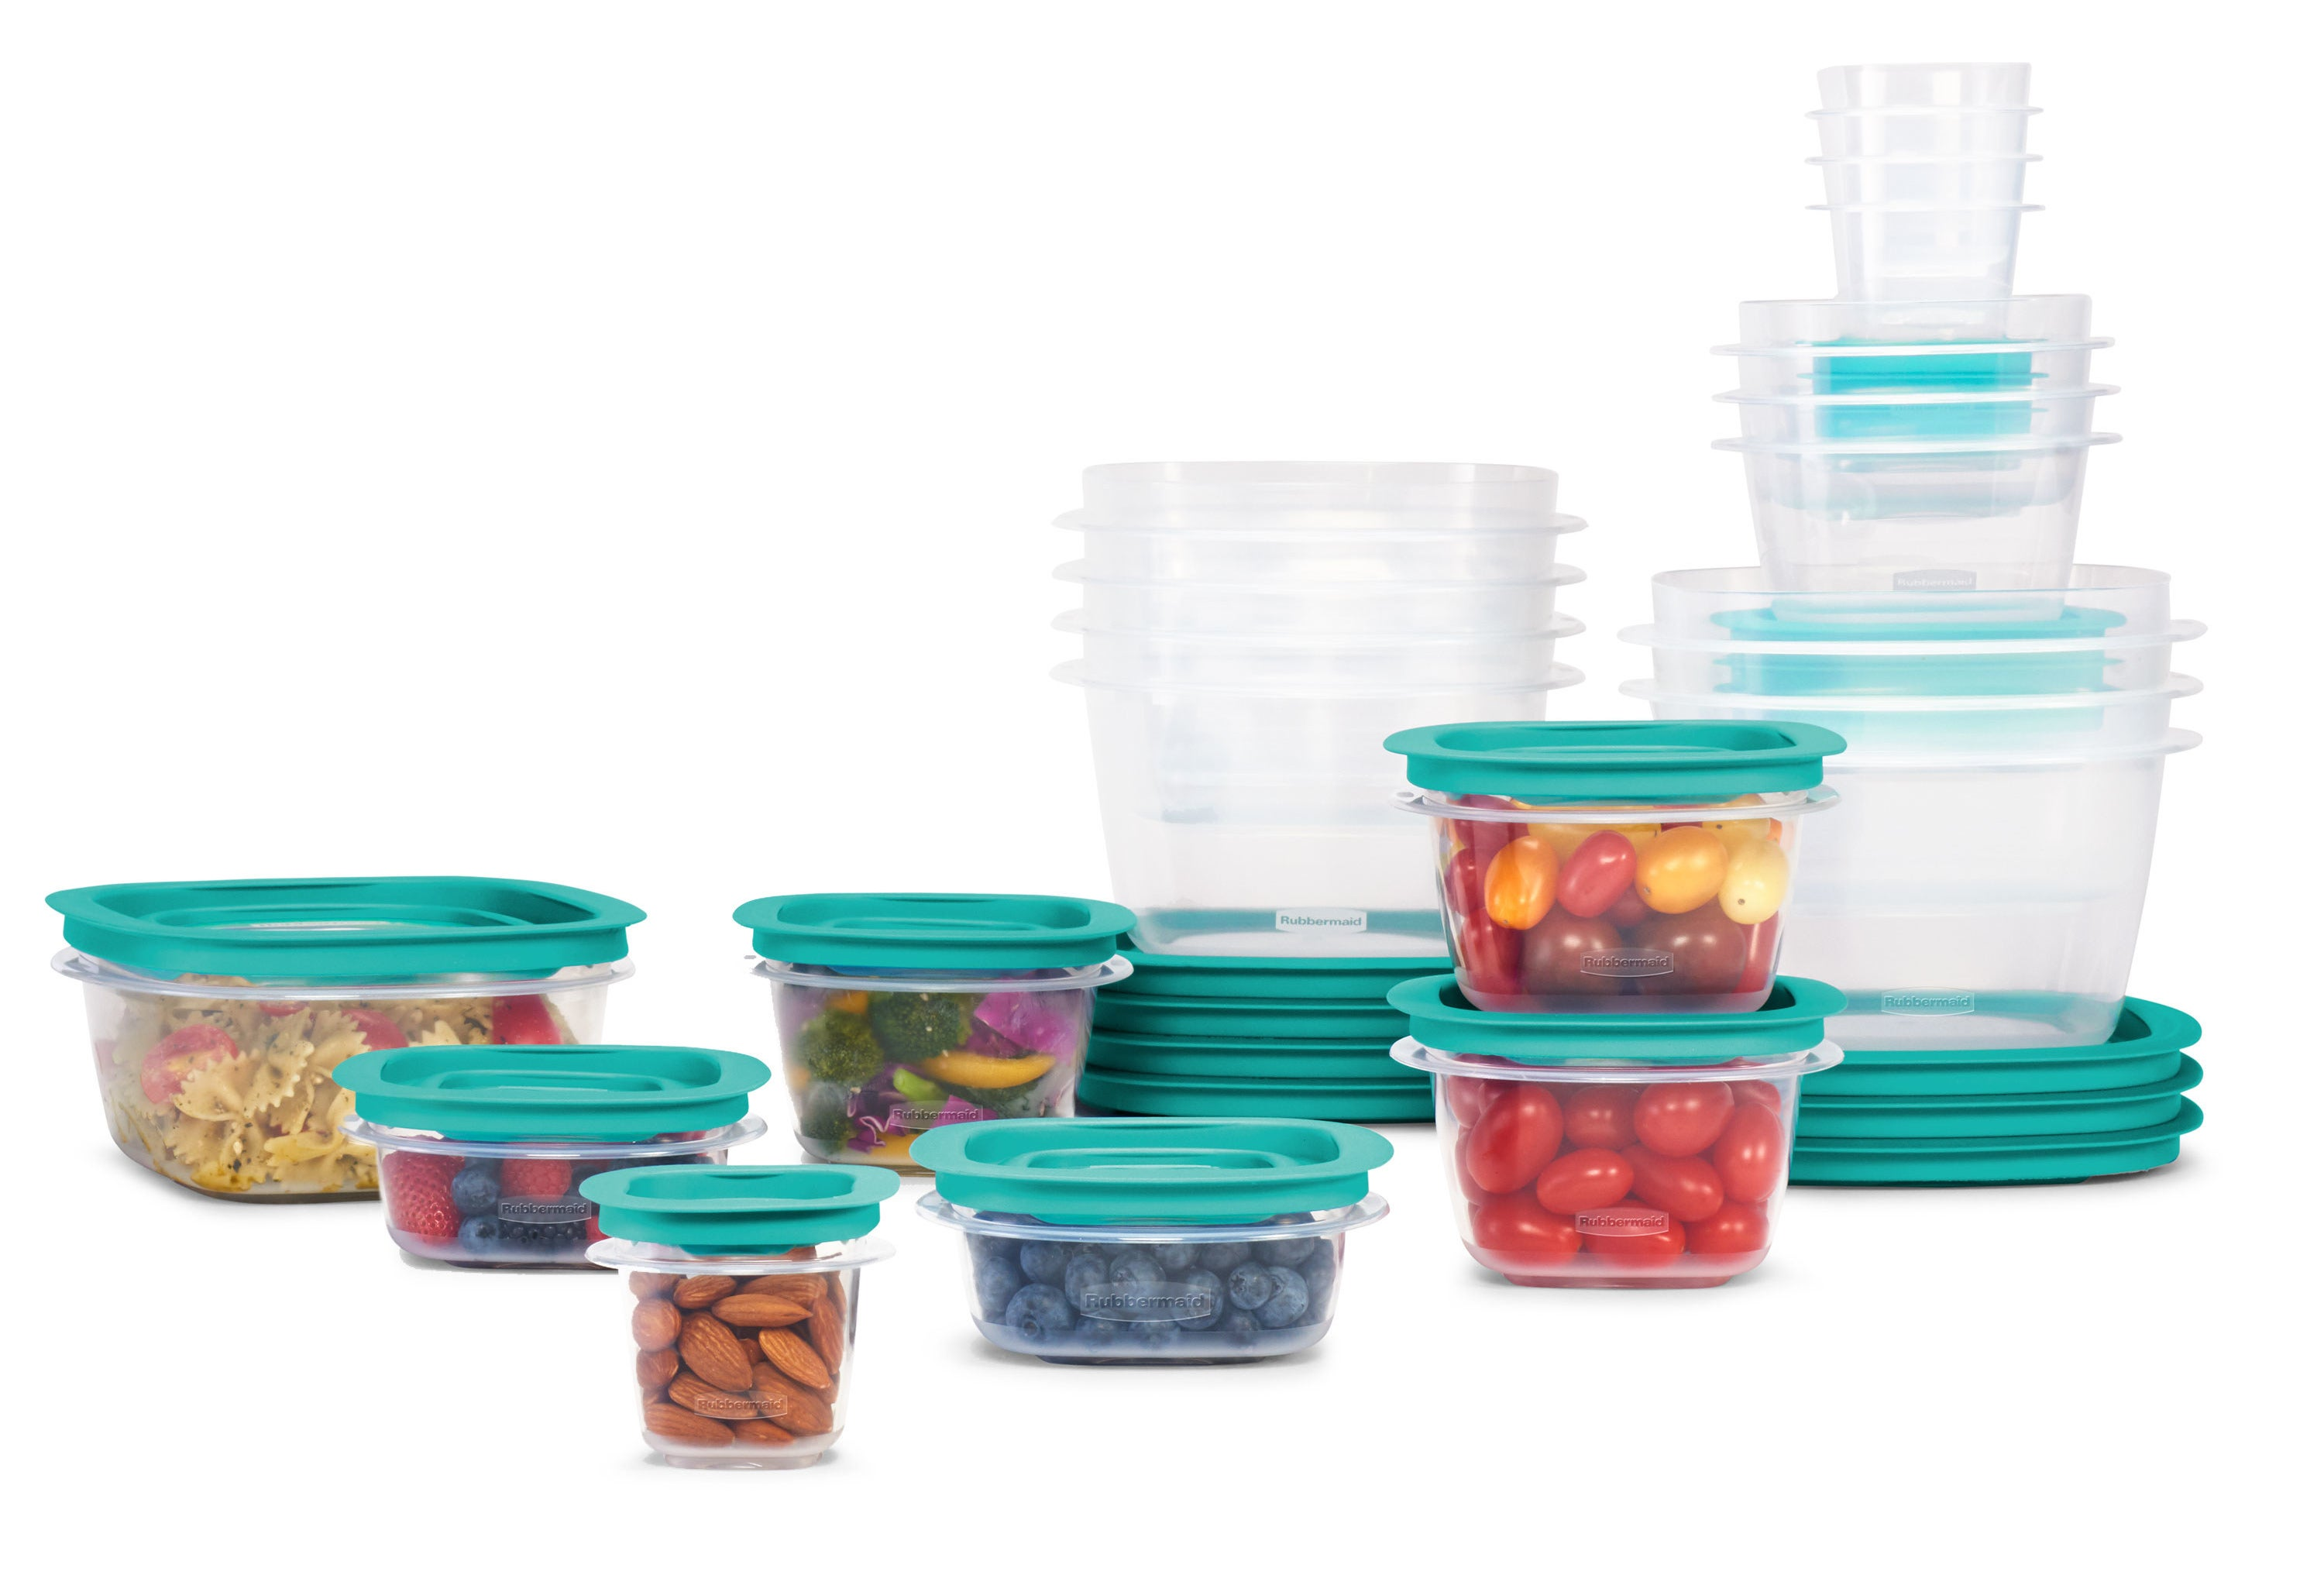 a 42 piece set of rubbermaid food storage containers with teal lids